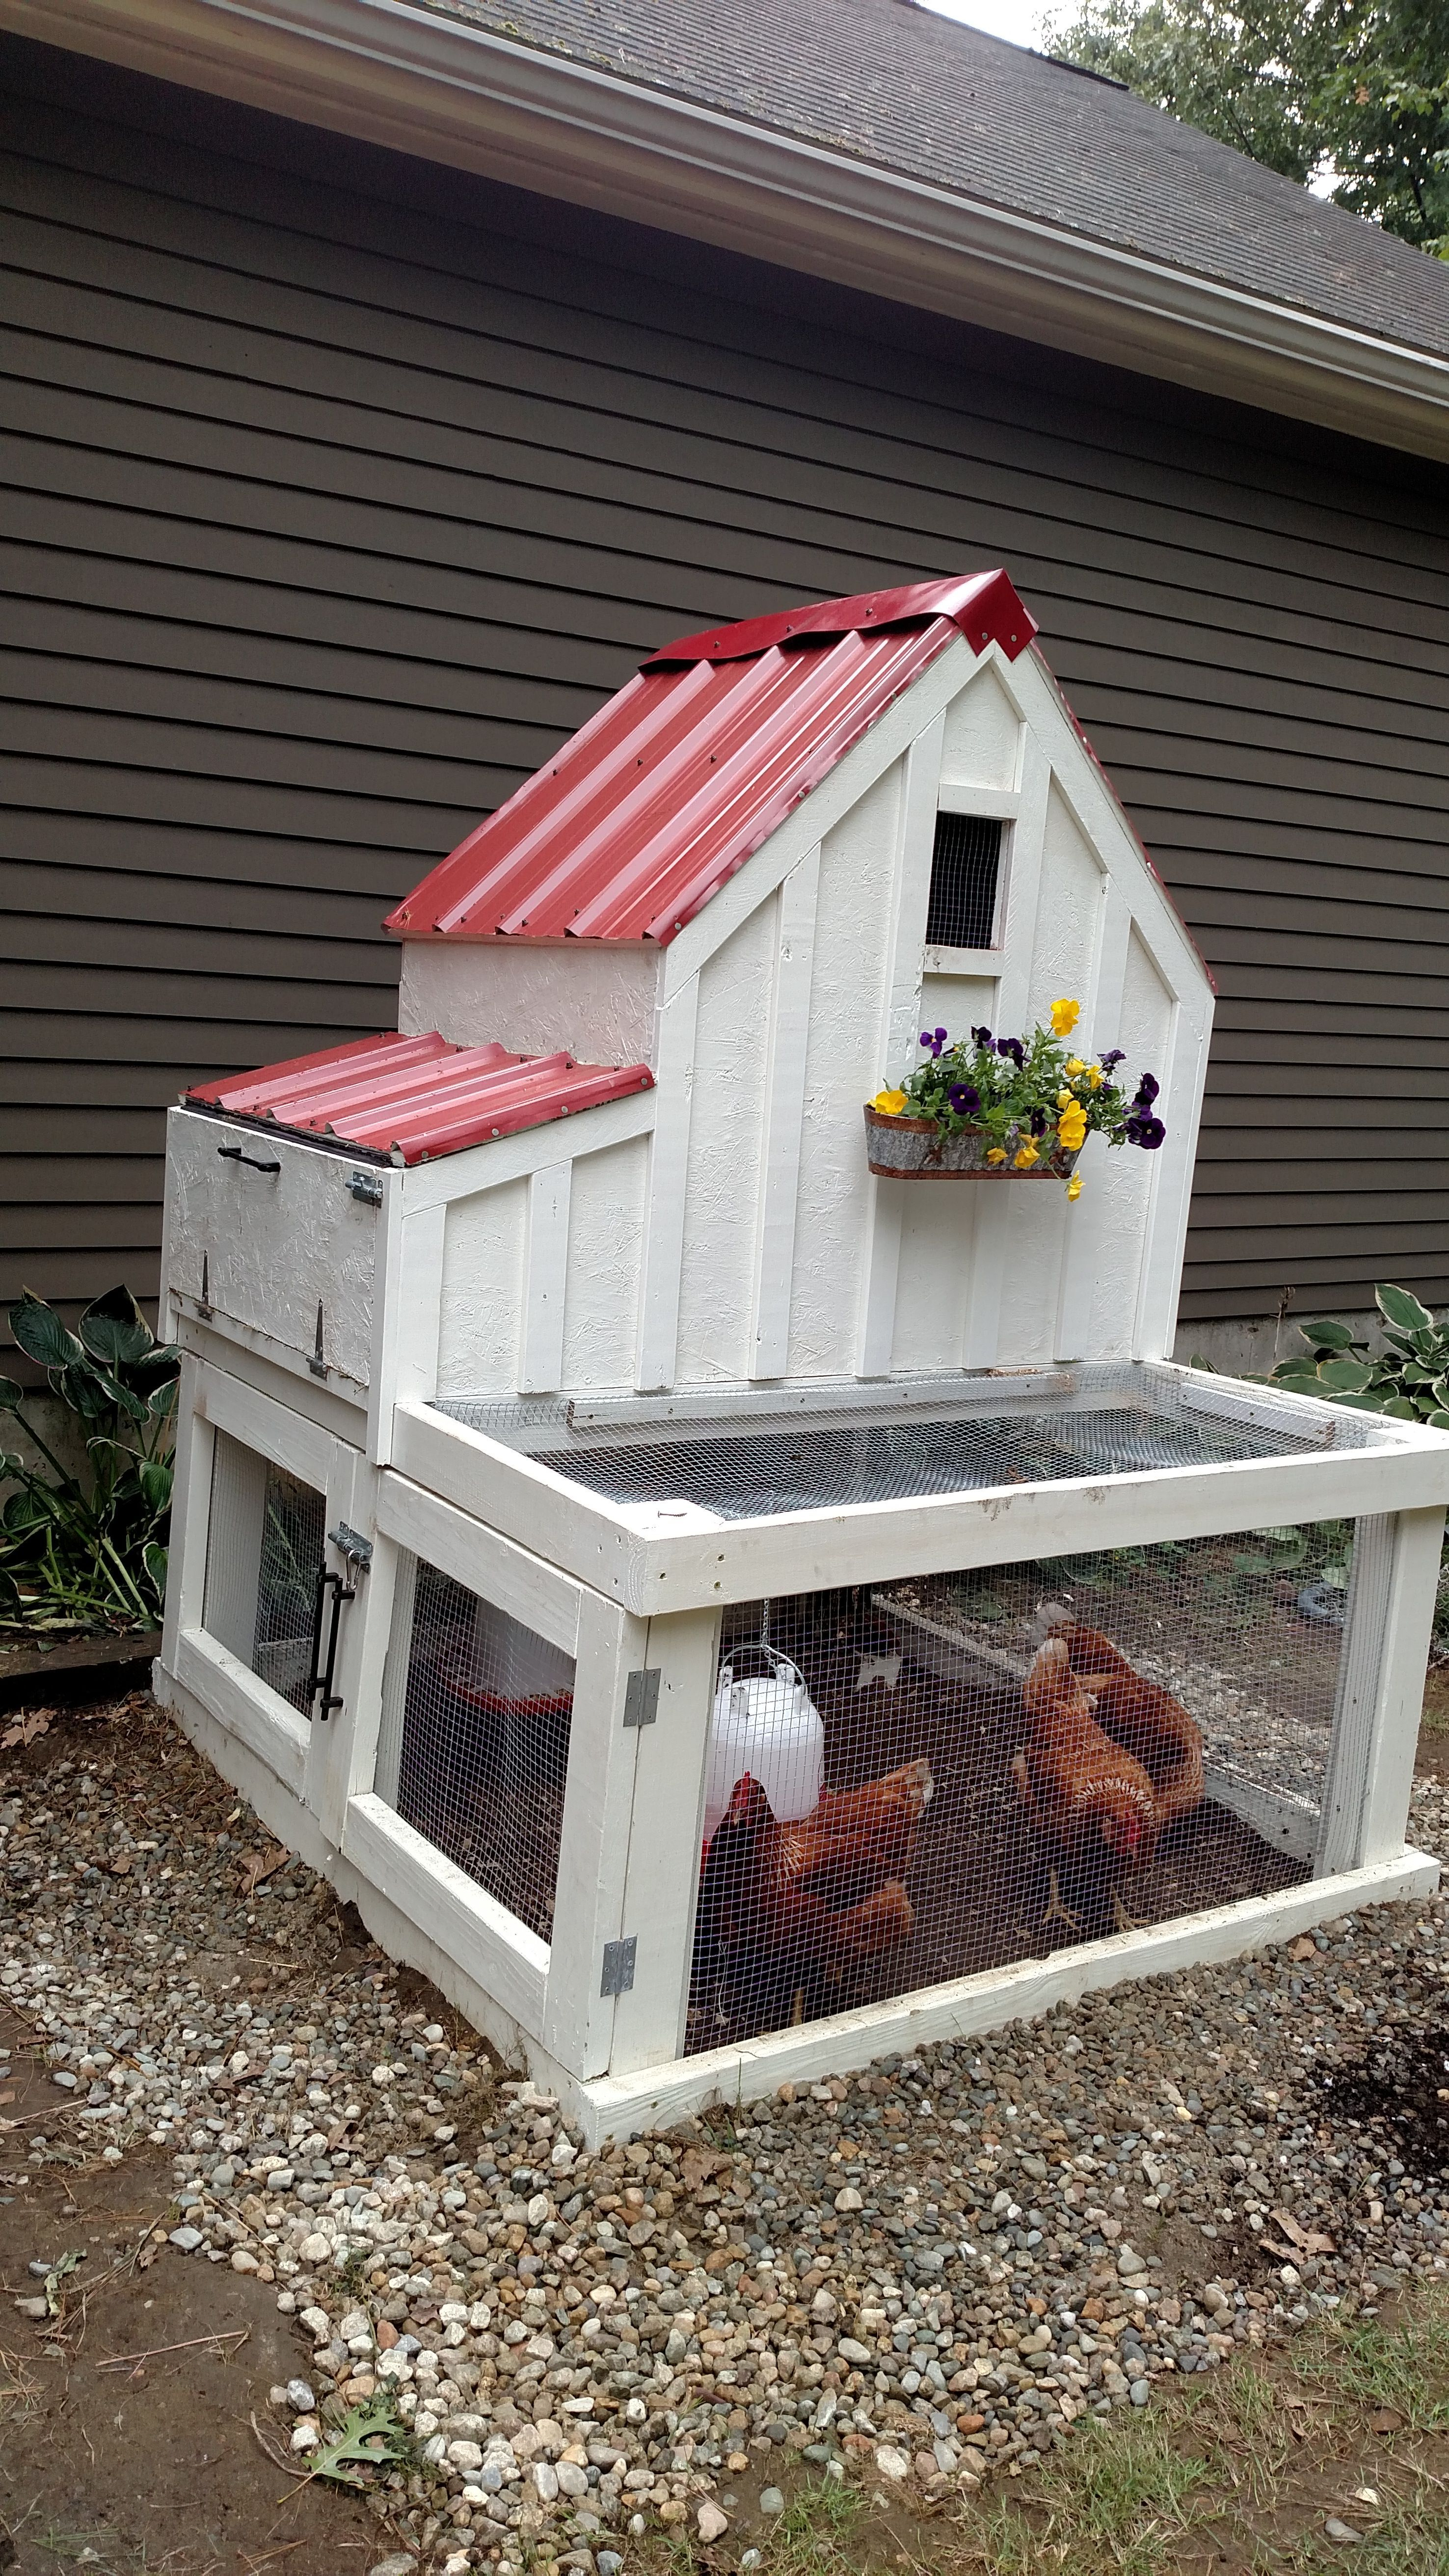 My version of the small chicken coop do it yourself home projects my version of the small chicken coop do it yourself home projects from ana white solutioingenieria Choice Image